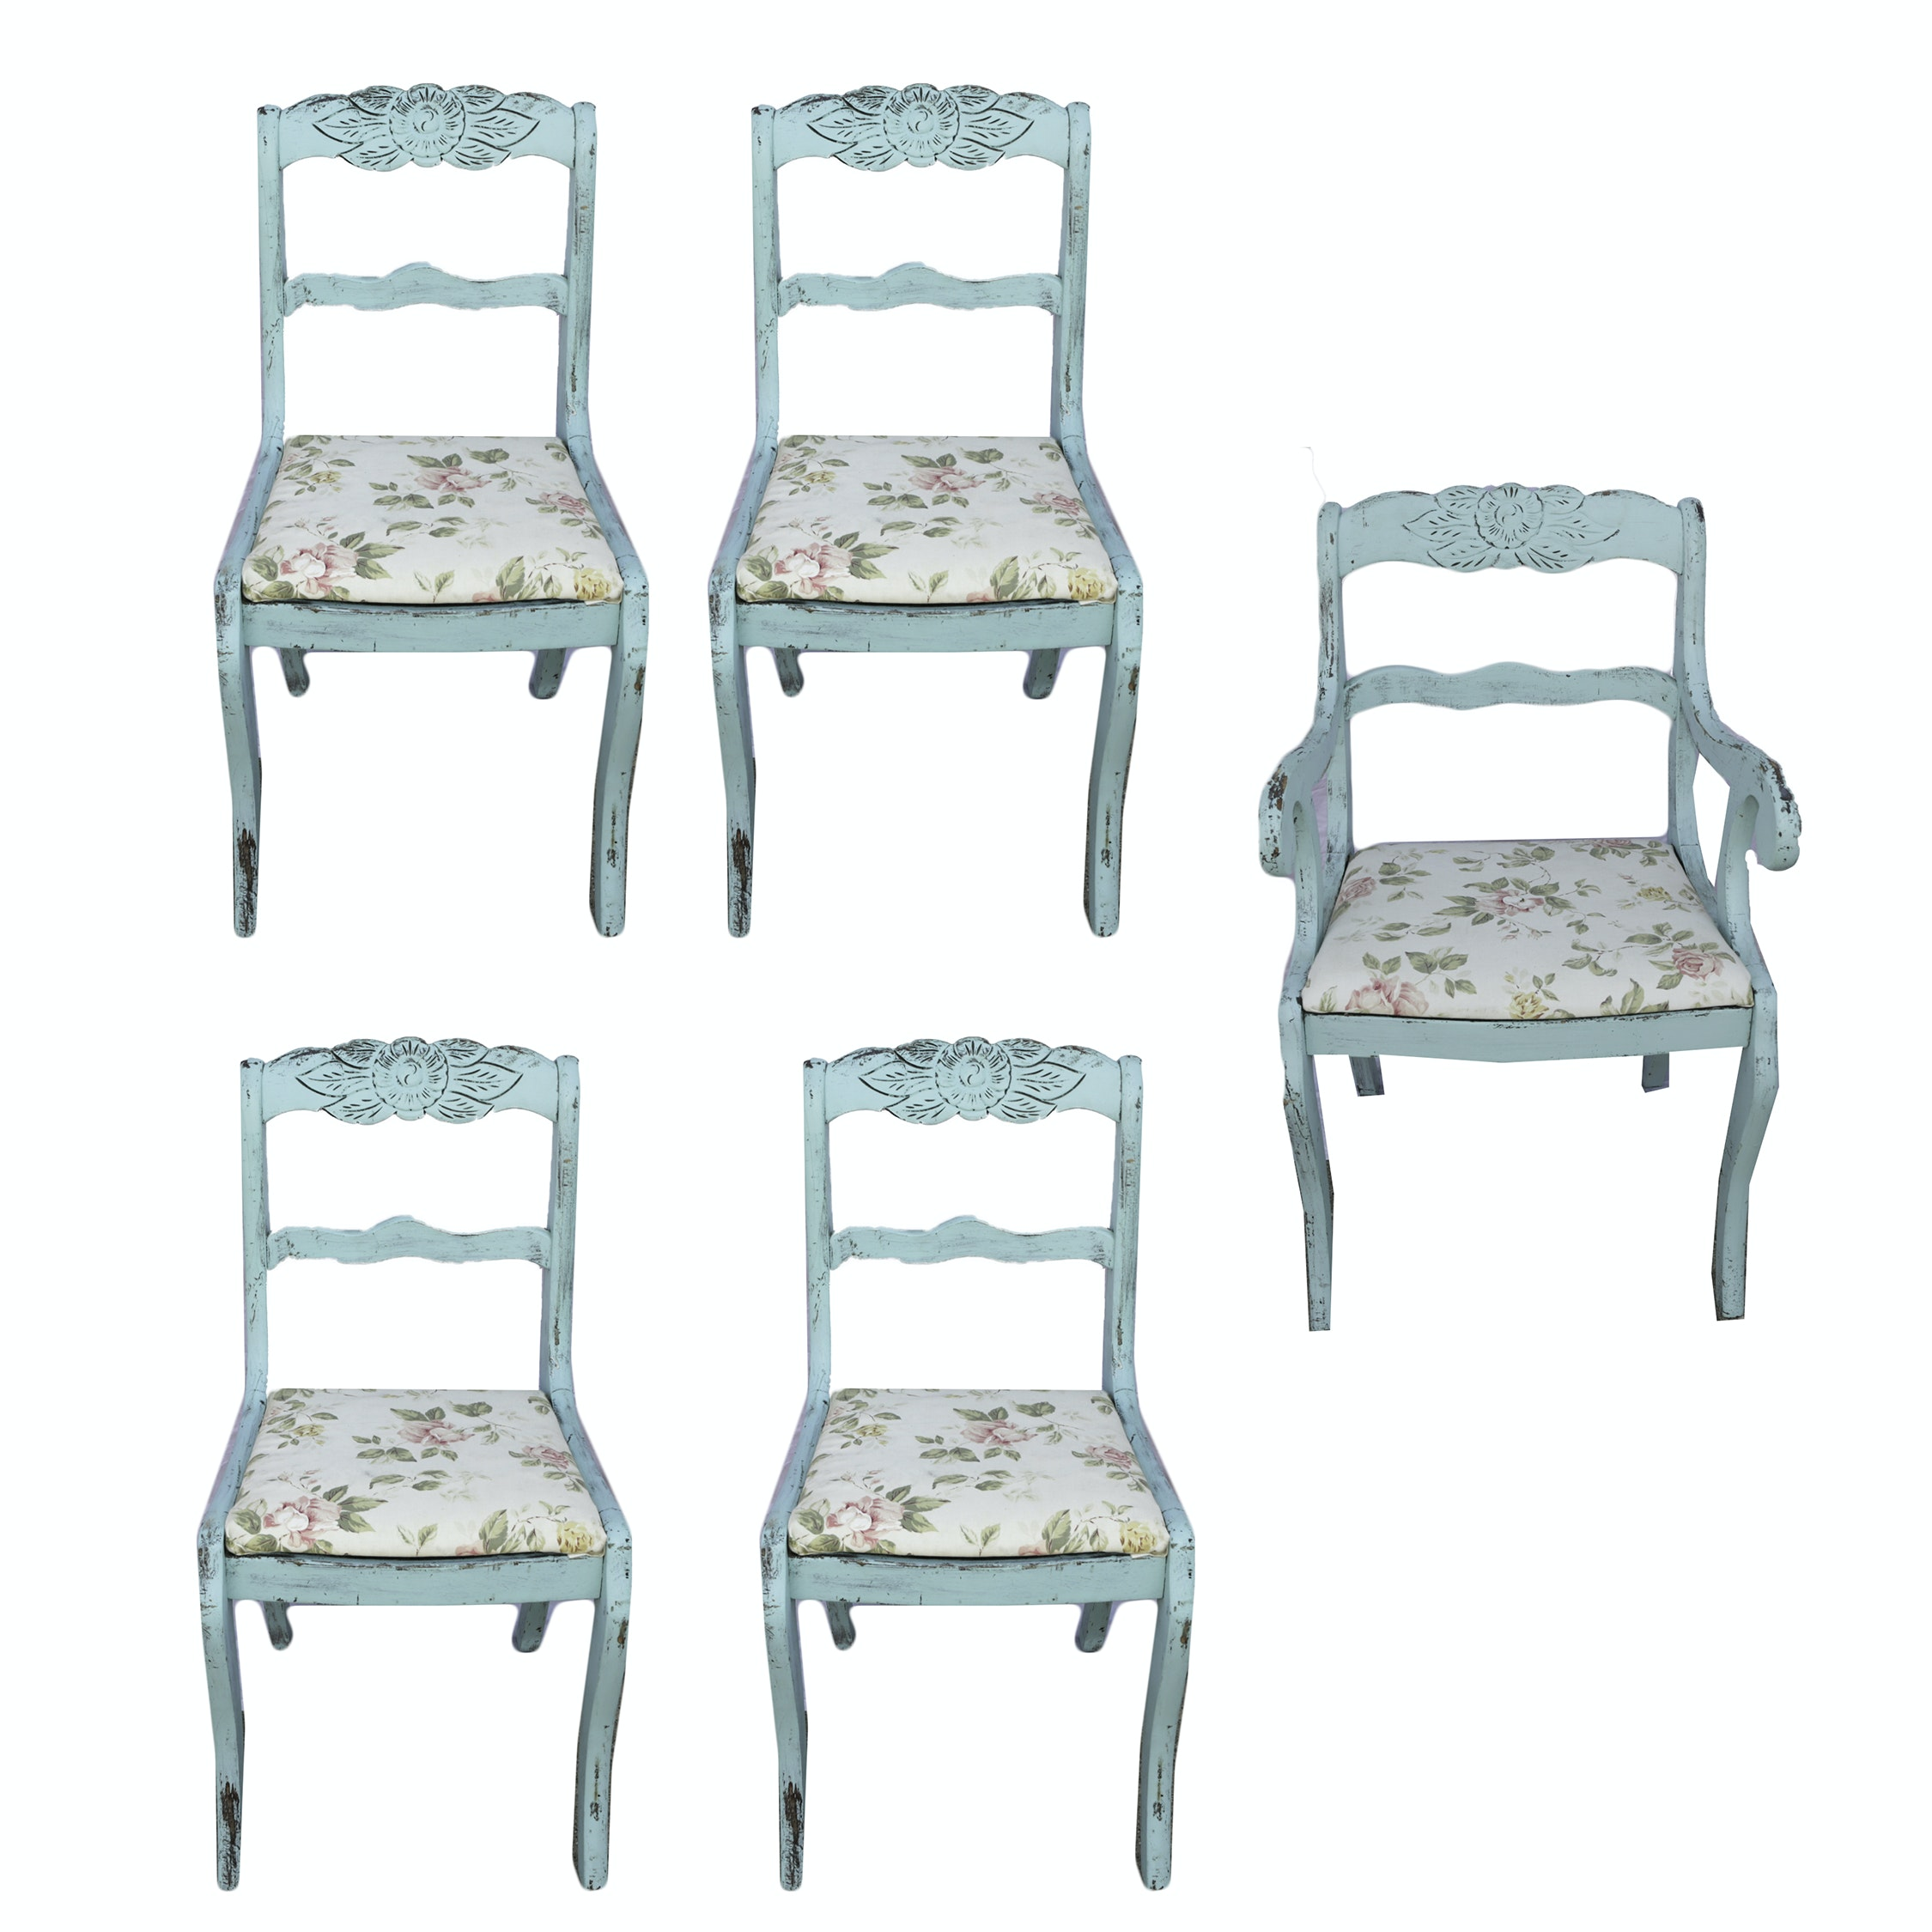 Five Vintage Painted Rose-Back Chairs